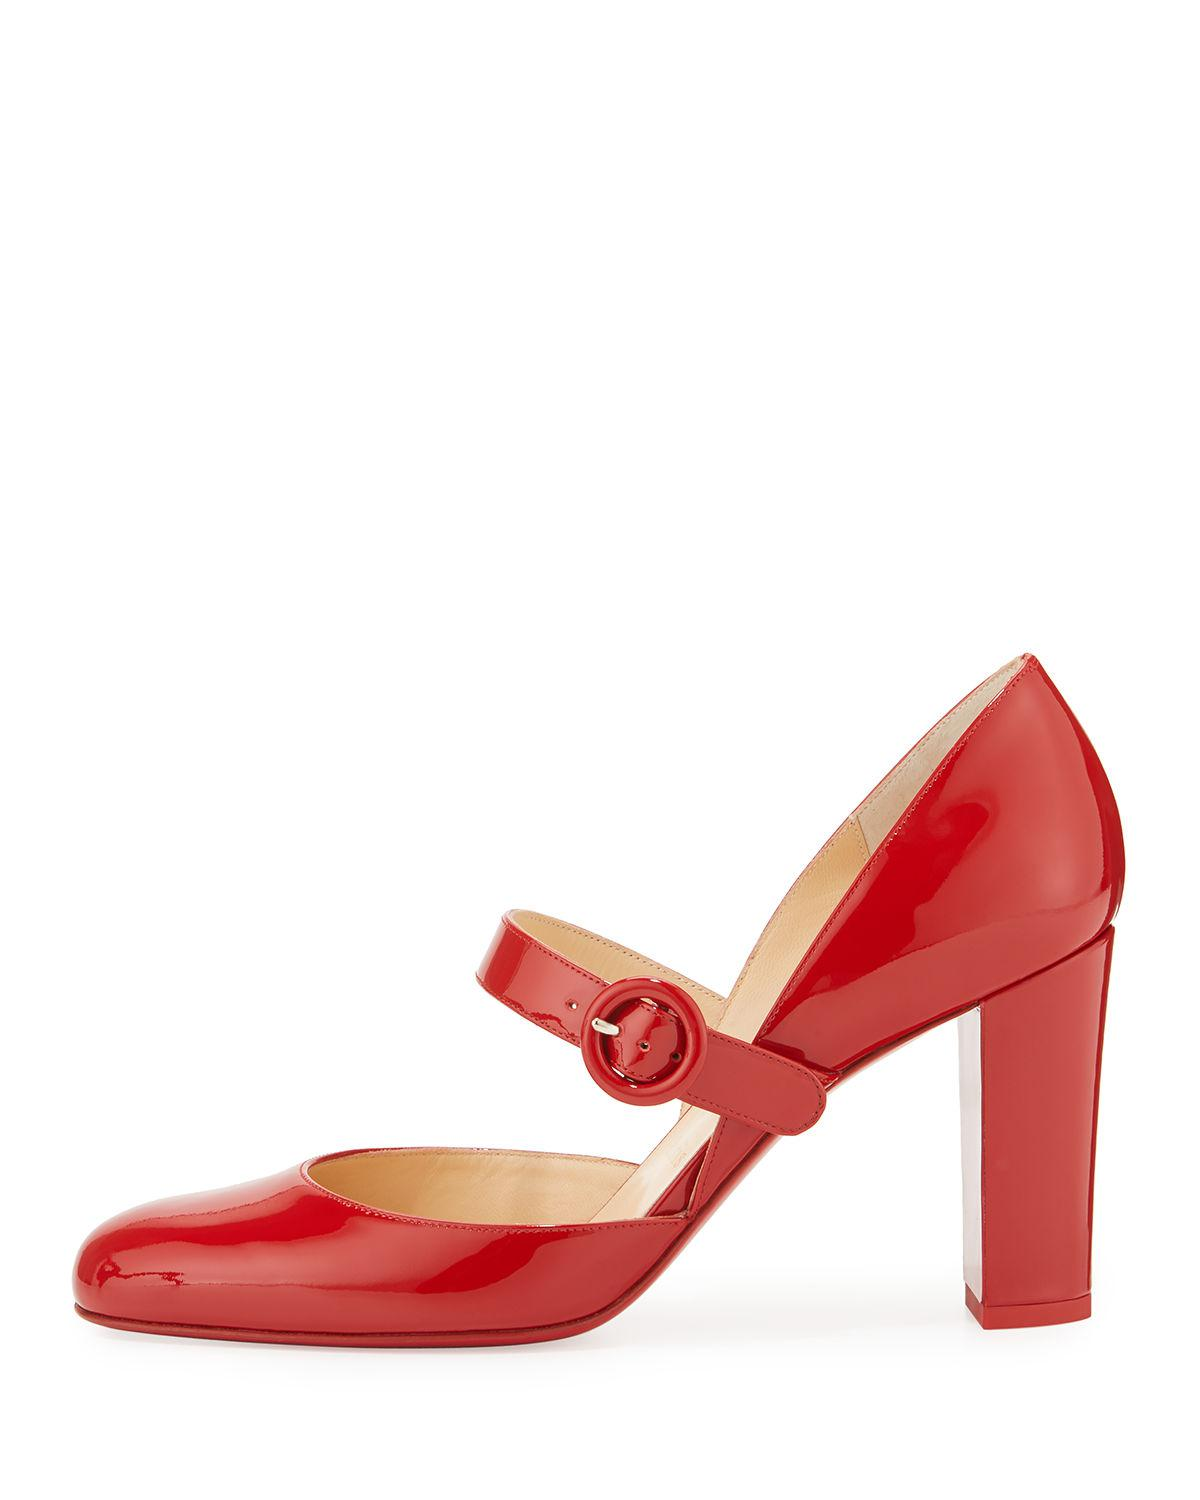 christian louboutin red mary jane